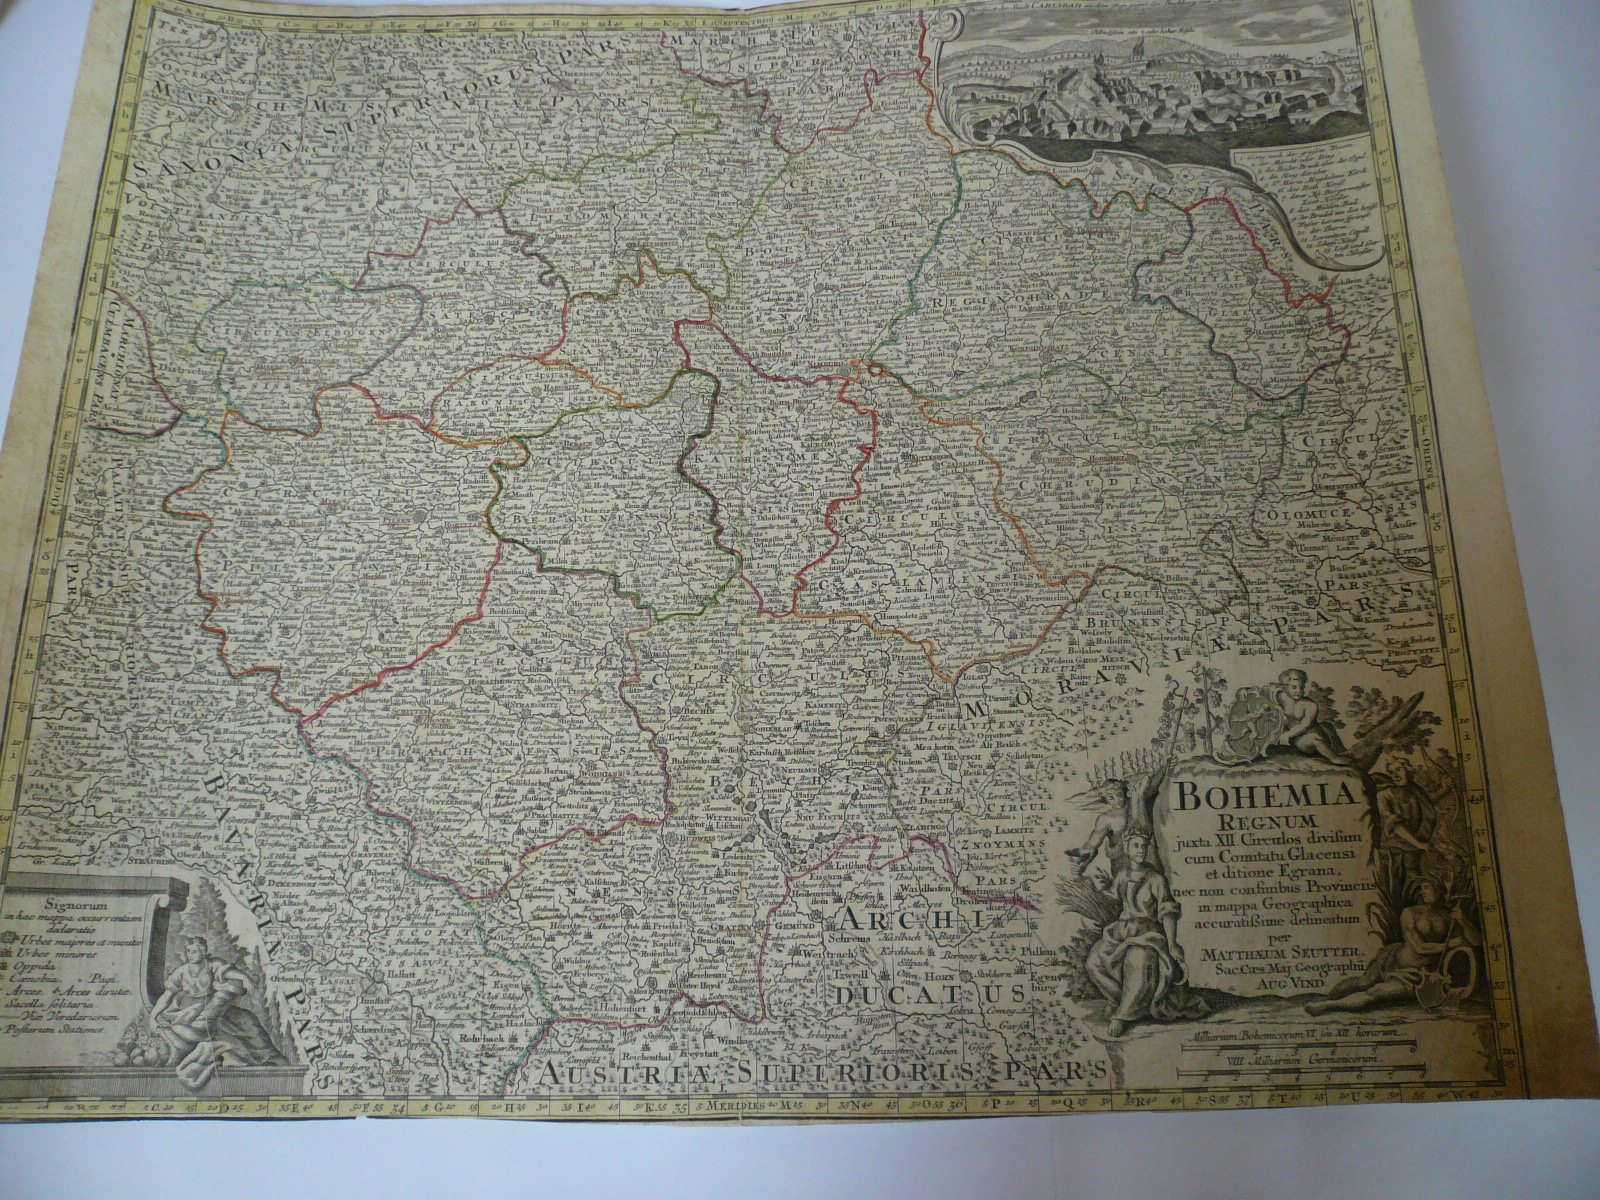 Bohemia Regnum, anno 1740, map Seutter Matthäus, old colours, pr